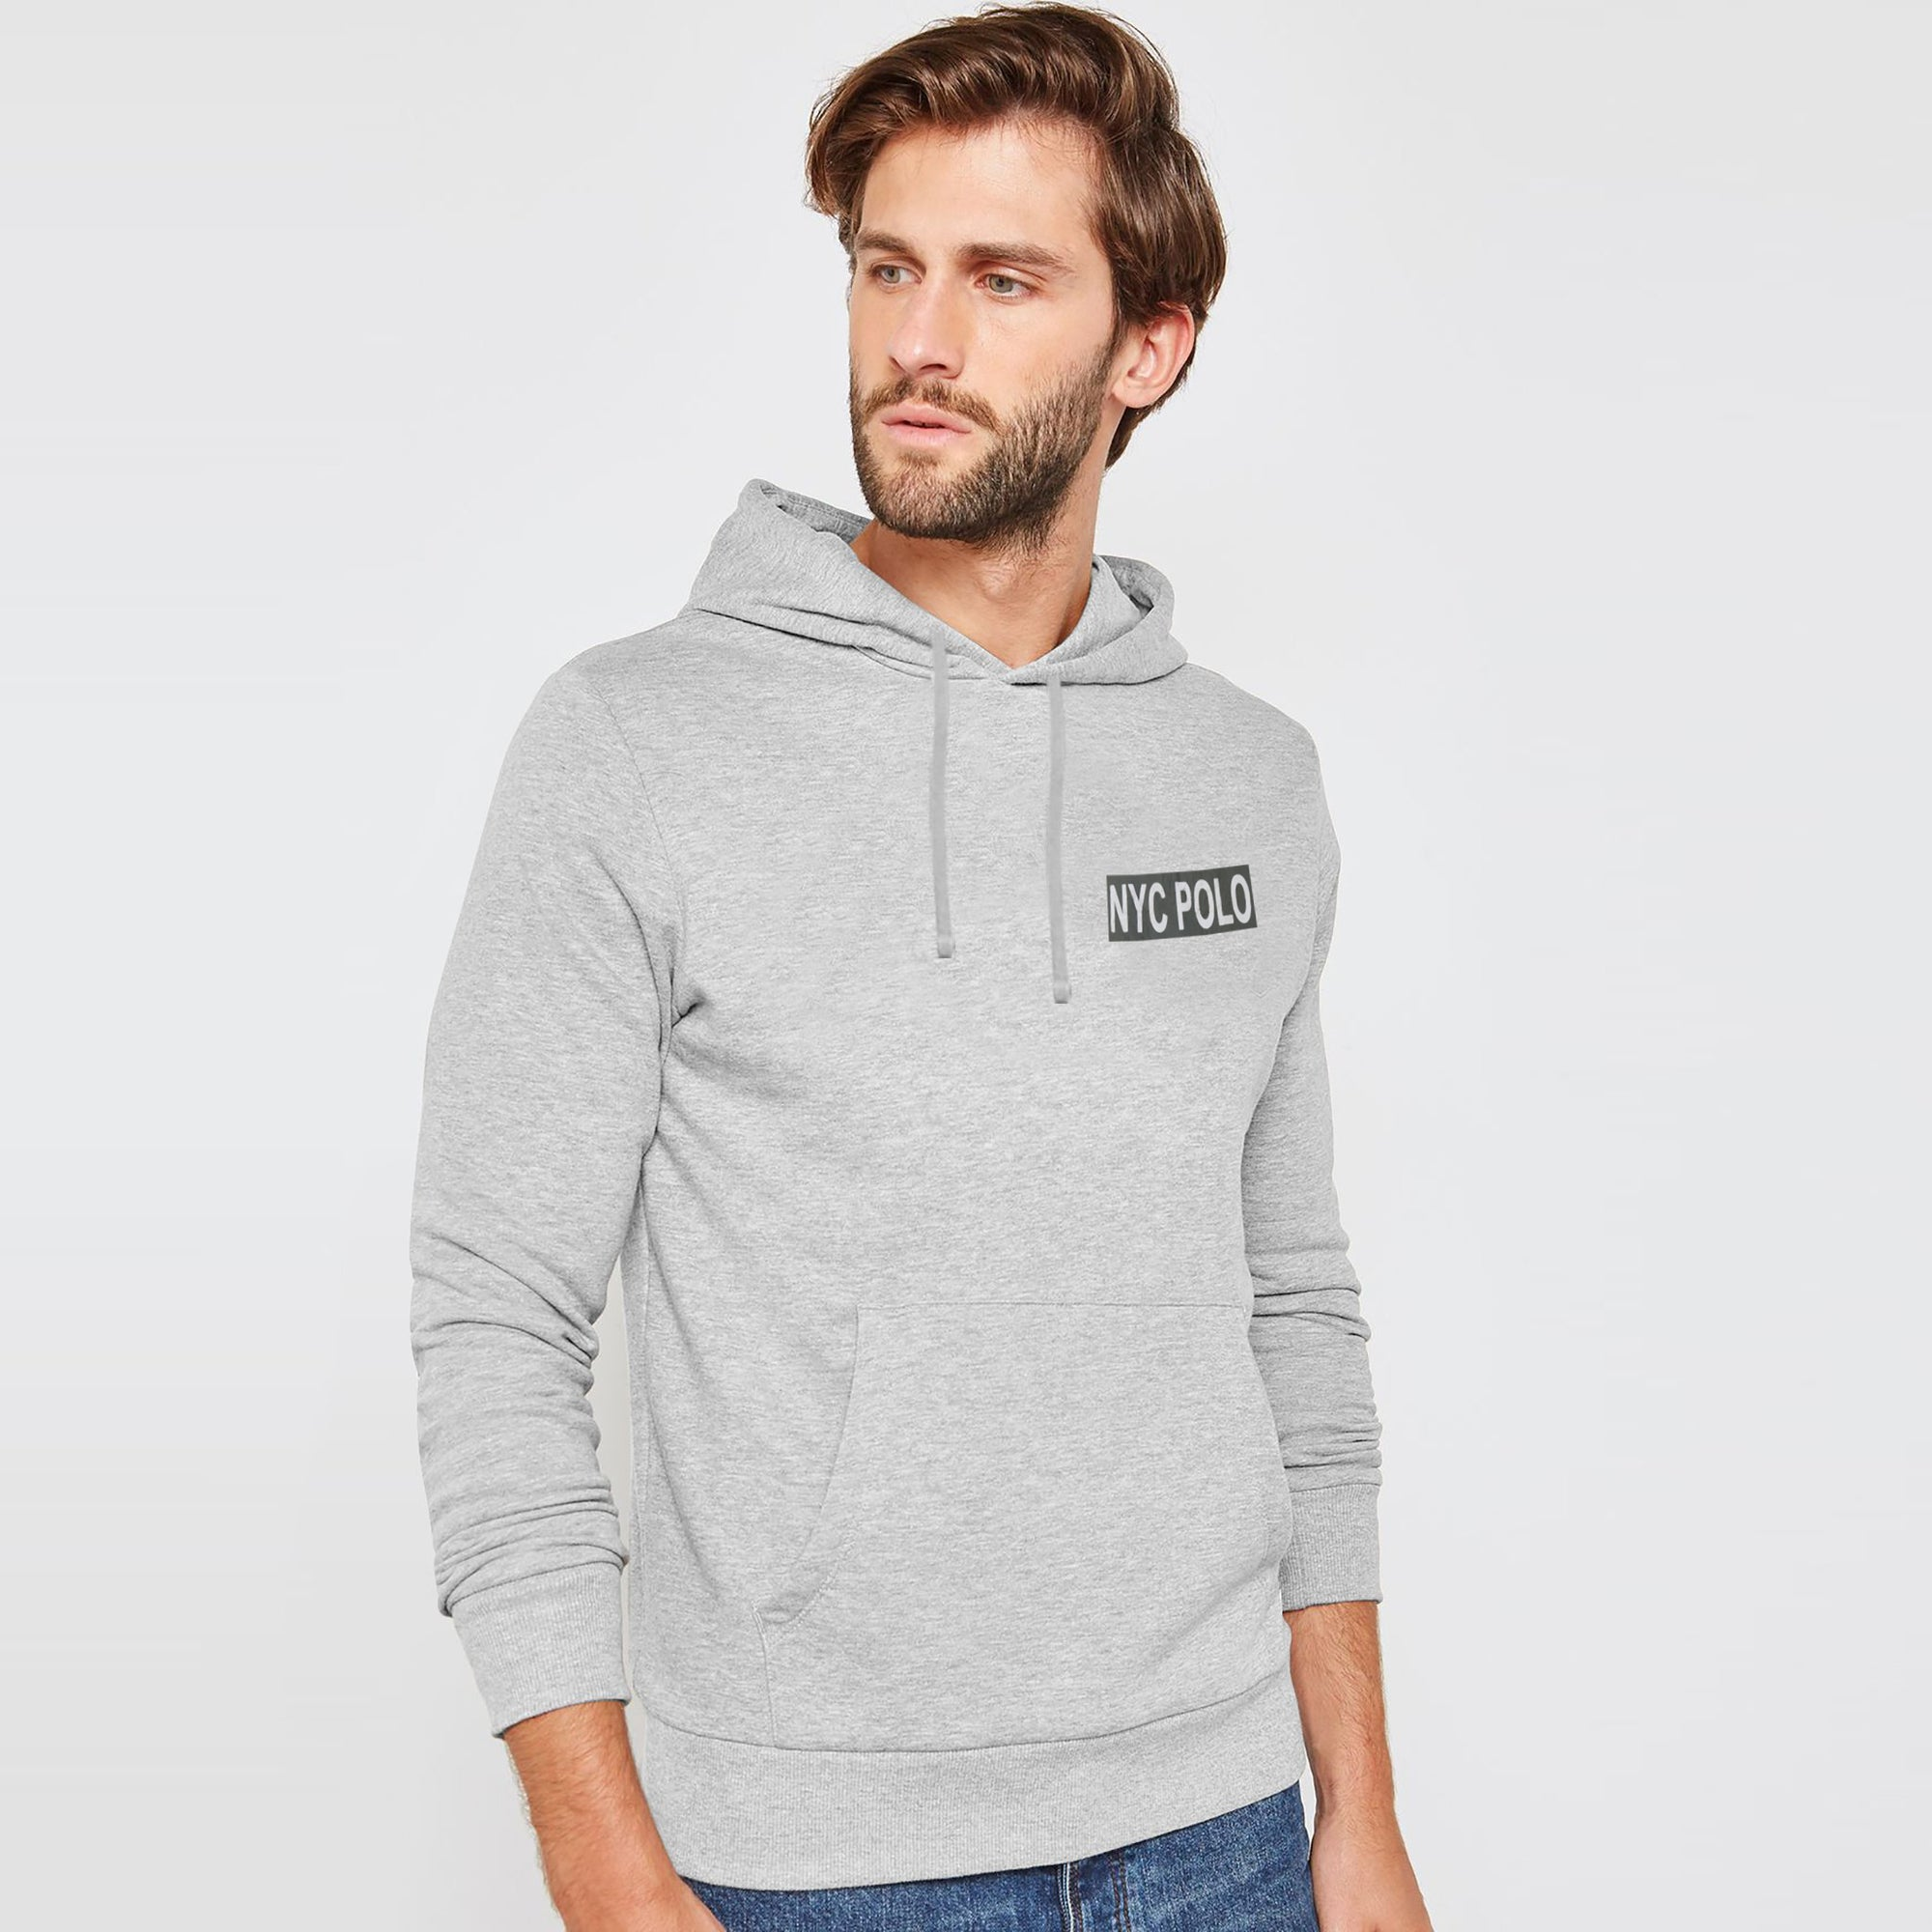 NYC Polo Fleece Pullover Hoodie For Men-Grey Melange-AN1343